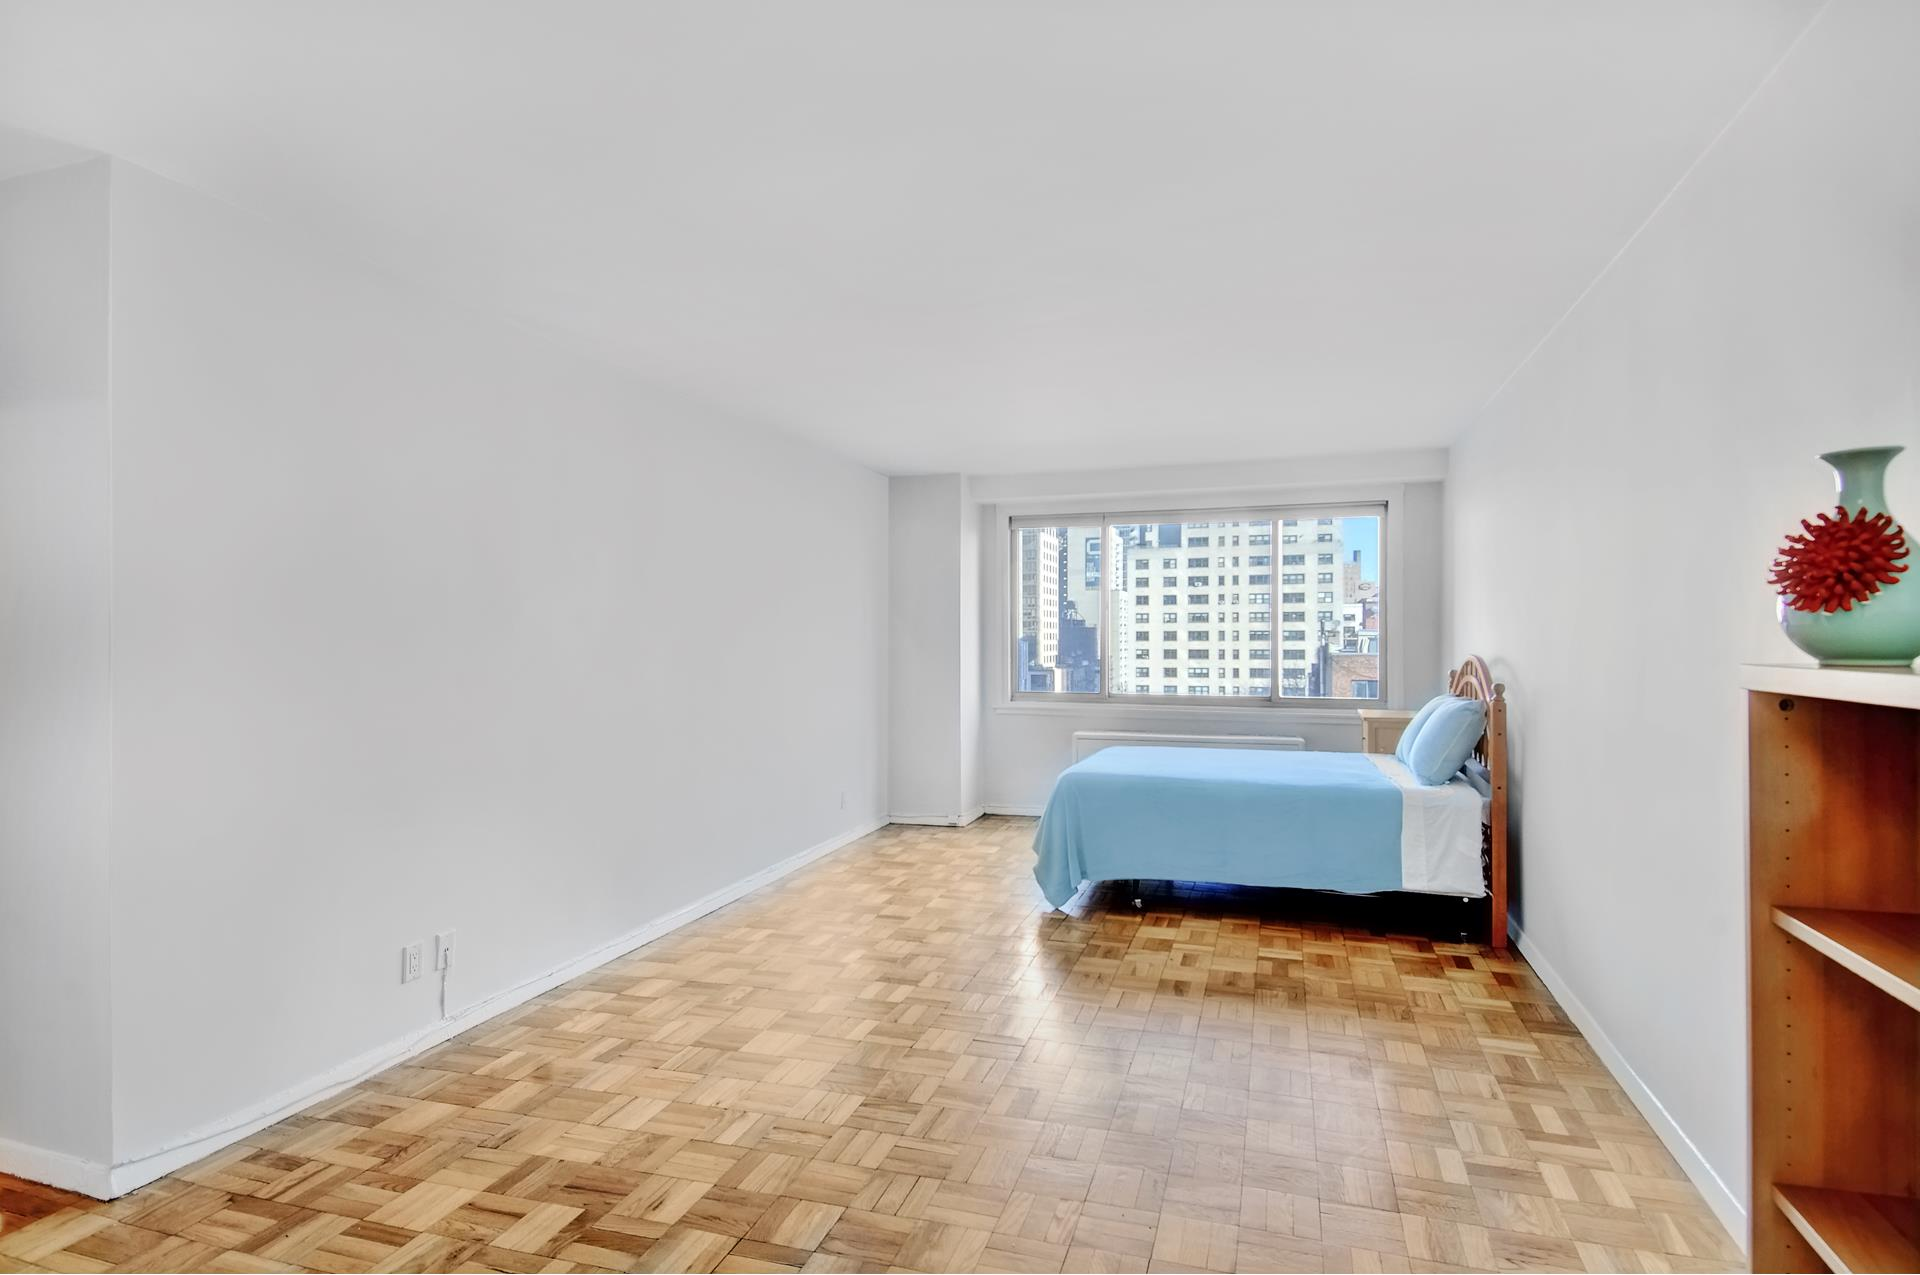 401 East 86th St, 9L - Upper East Side, New York